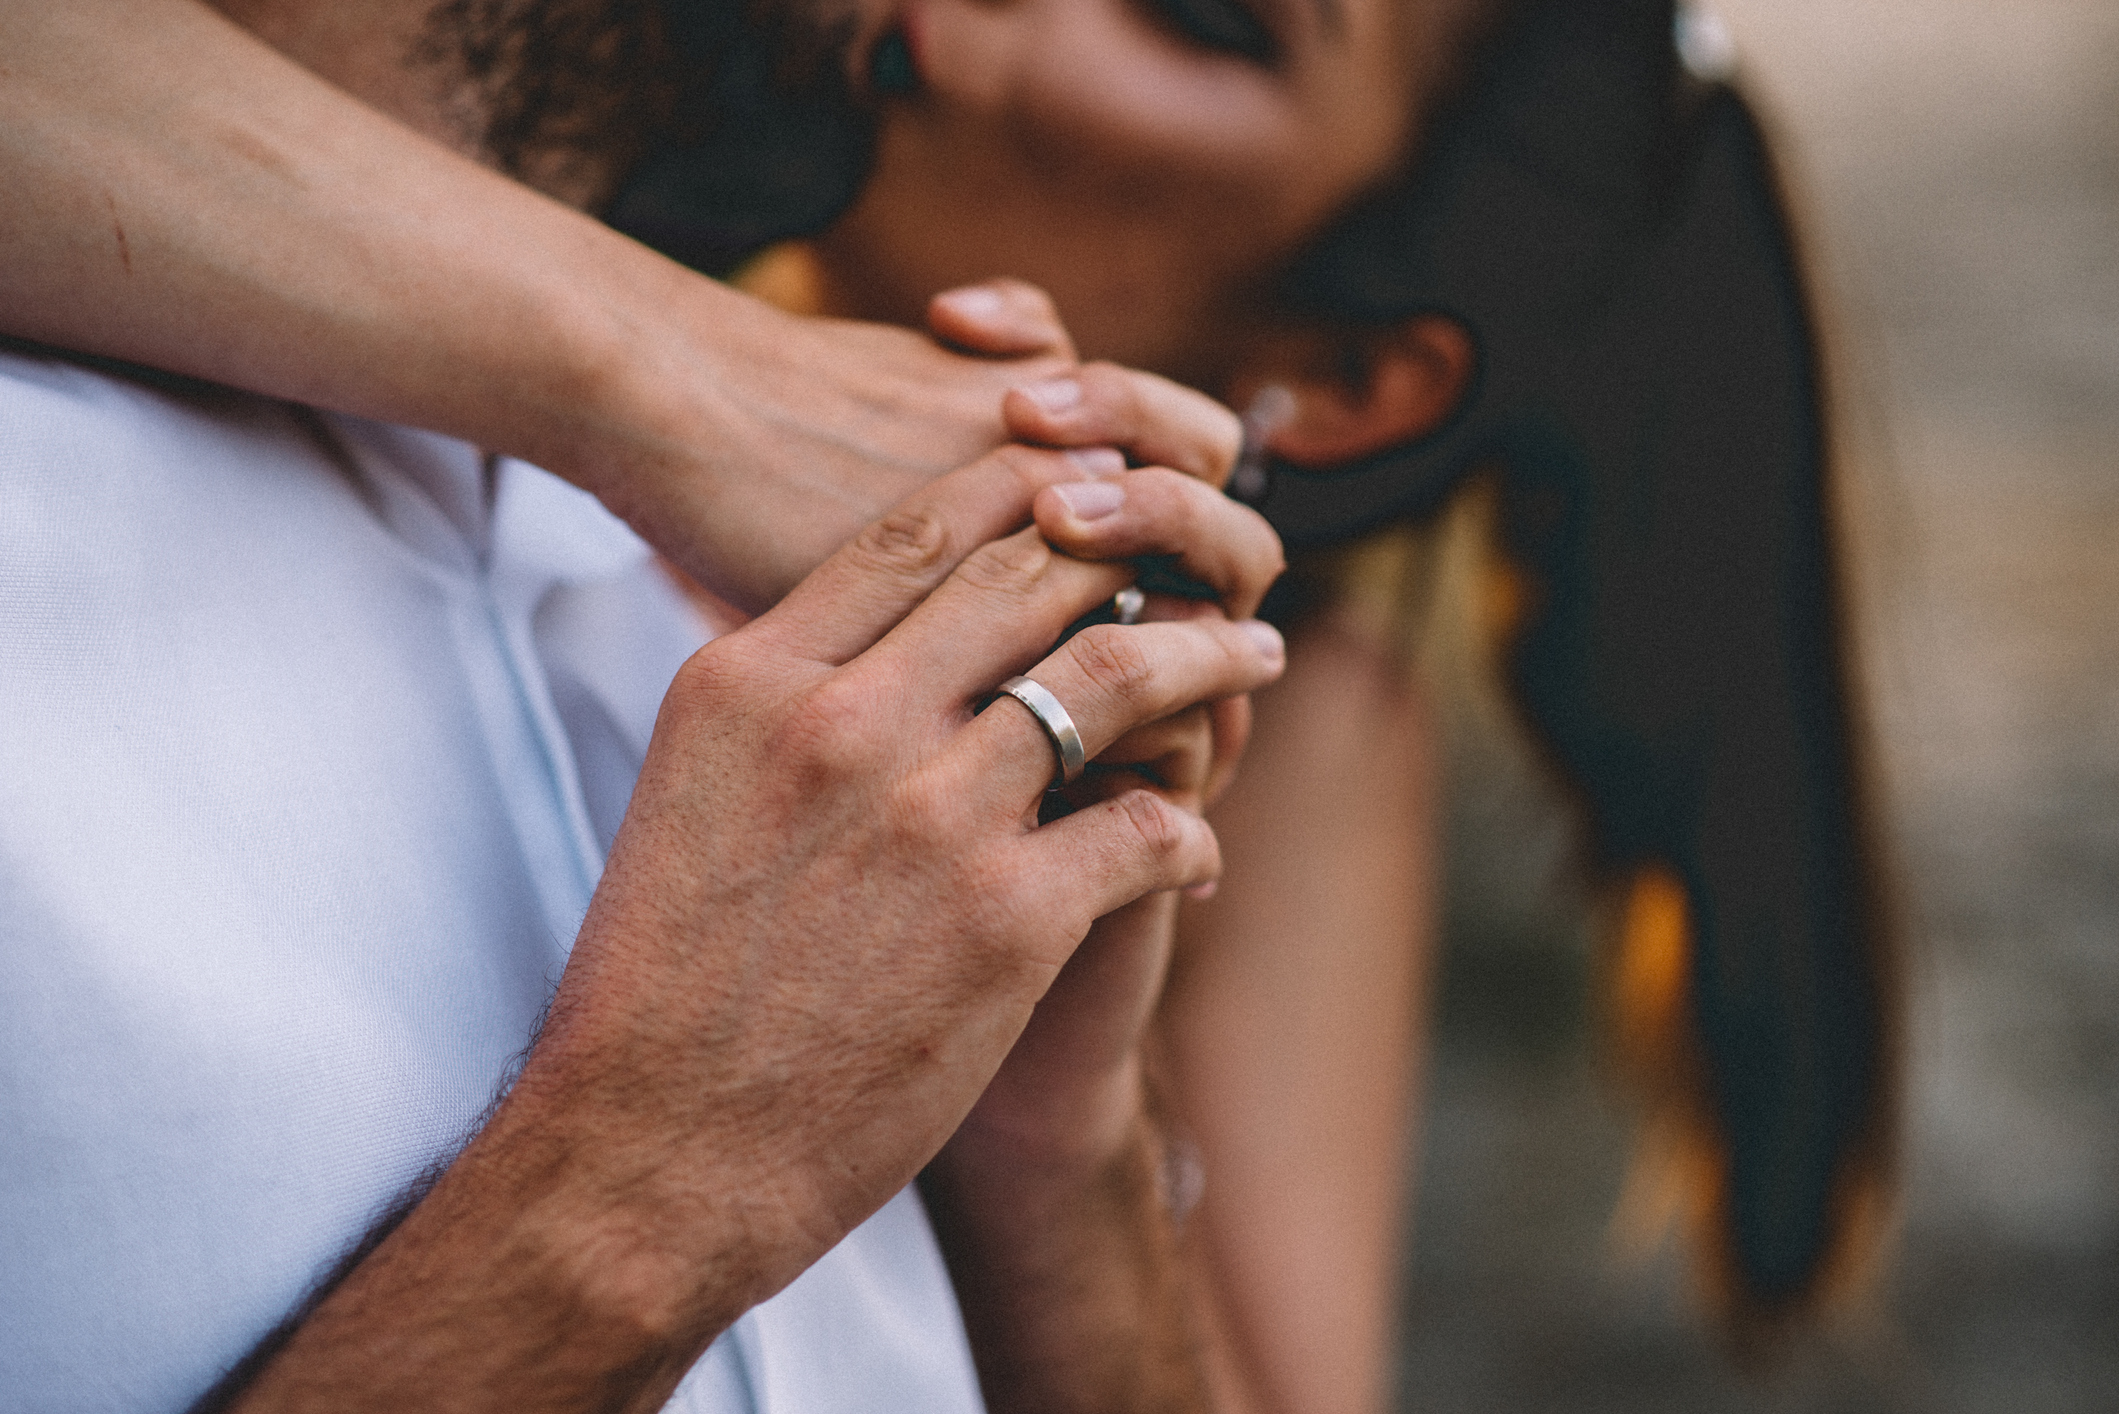 In our first year of marriage, I realized my husband had a serious problem – then THIS happened